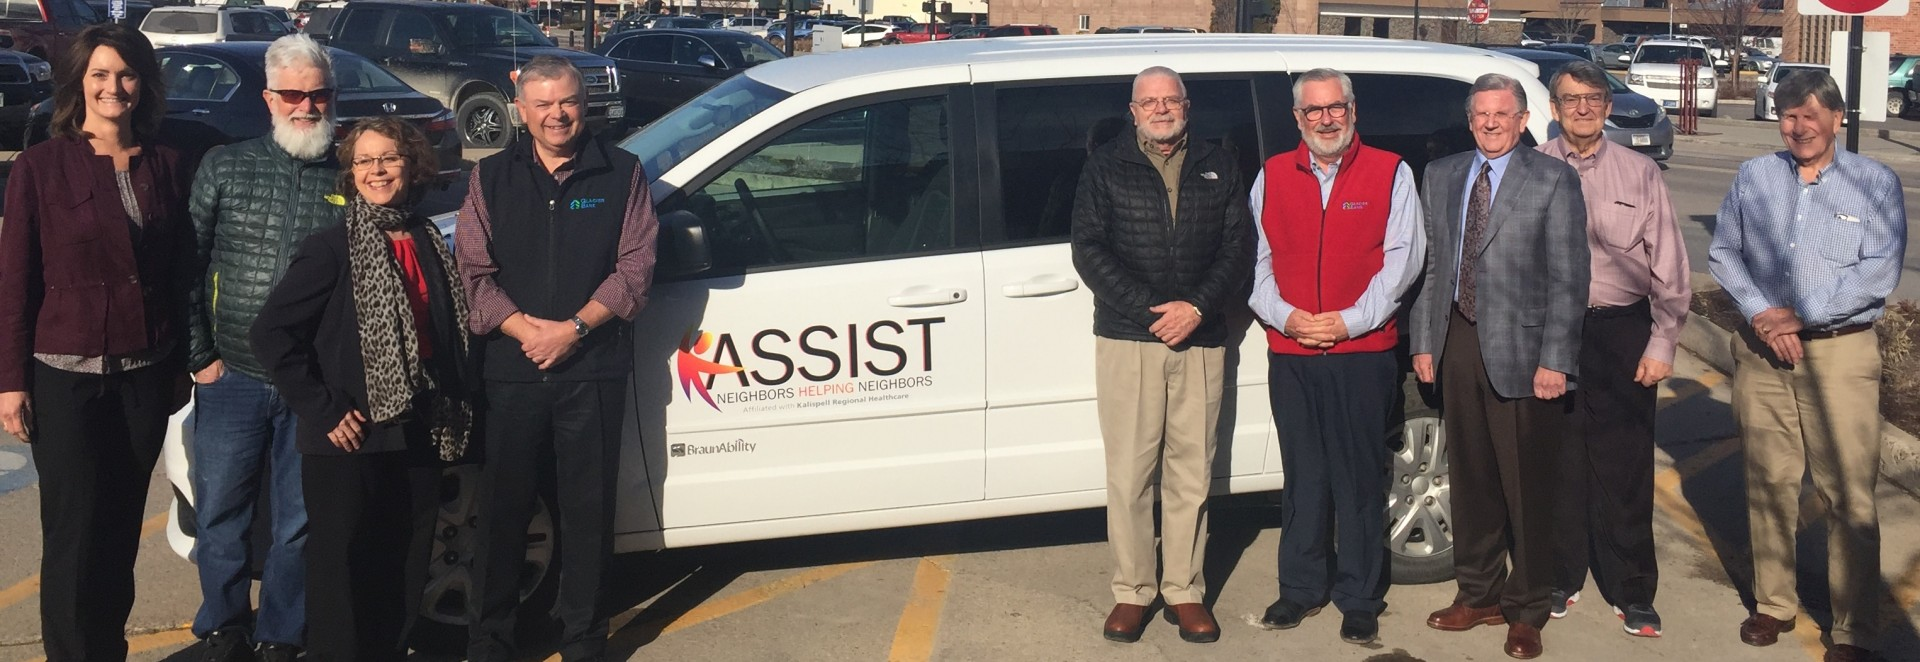 ASSIST's new van